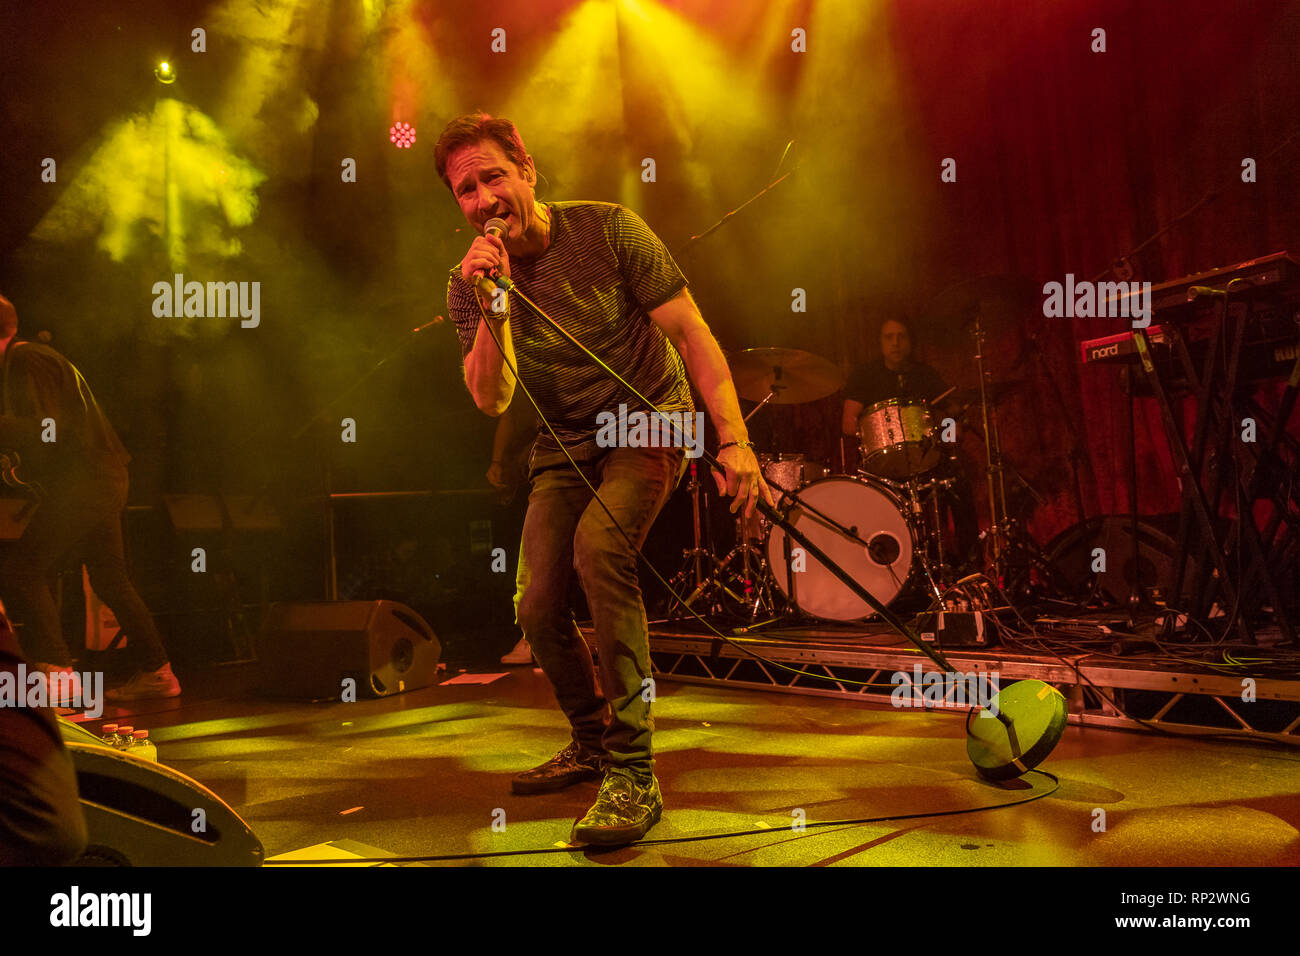 Dublin, Ireland. 20th Feb, 2019. X Files actor David Duchovny (Fox Mulder) sings on stage in Dublin's Academy music  venue. Credit: SOPA Images Limited/Alamy Live News Stock Photo